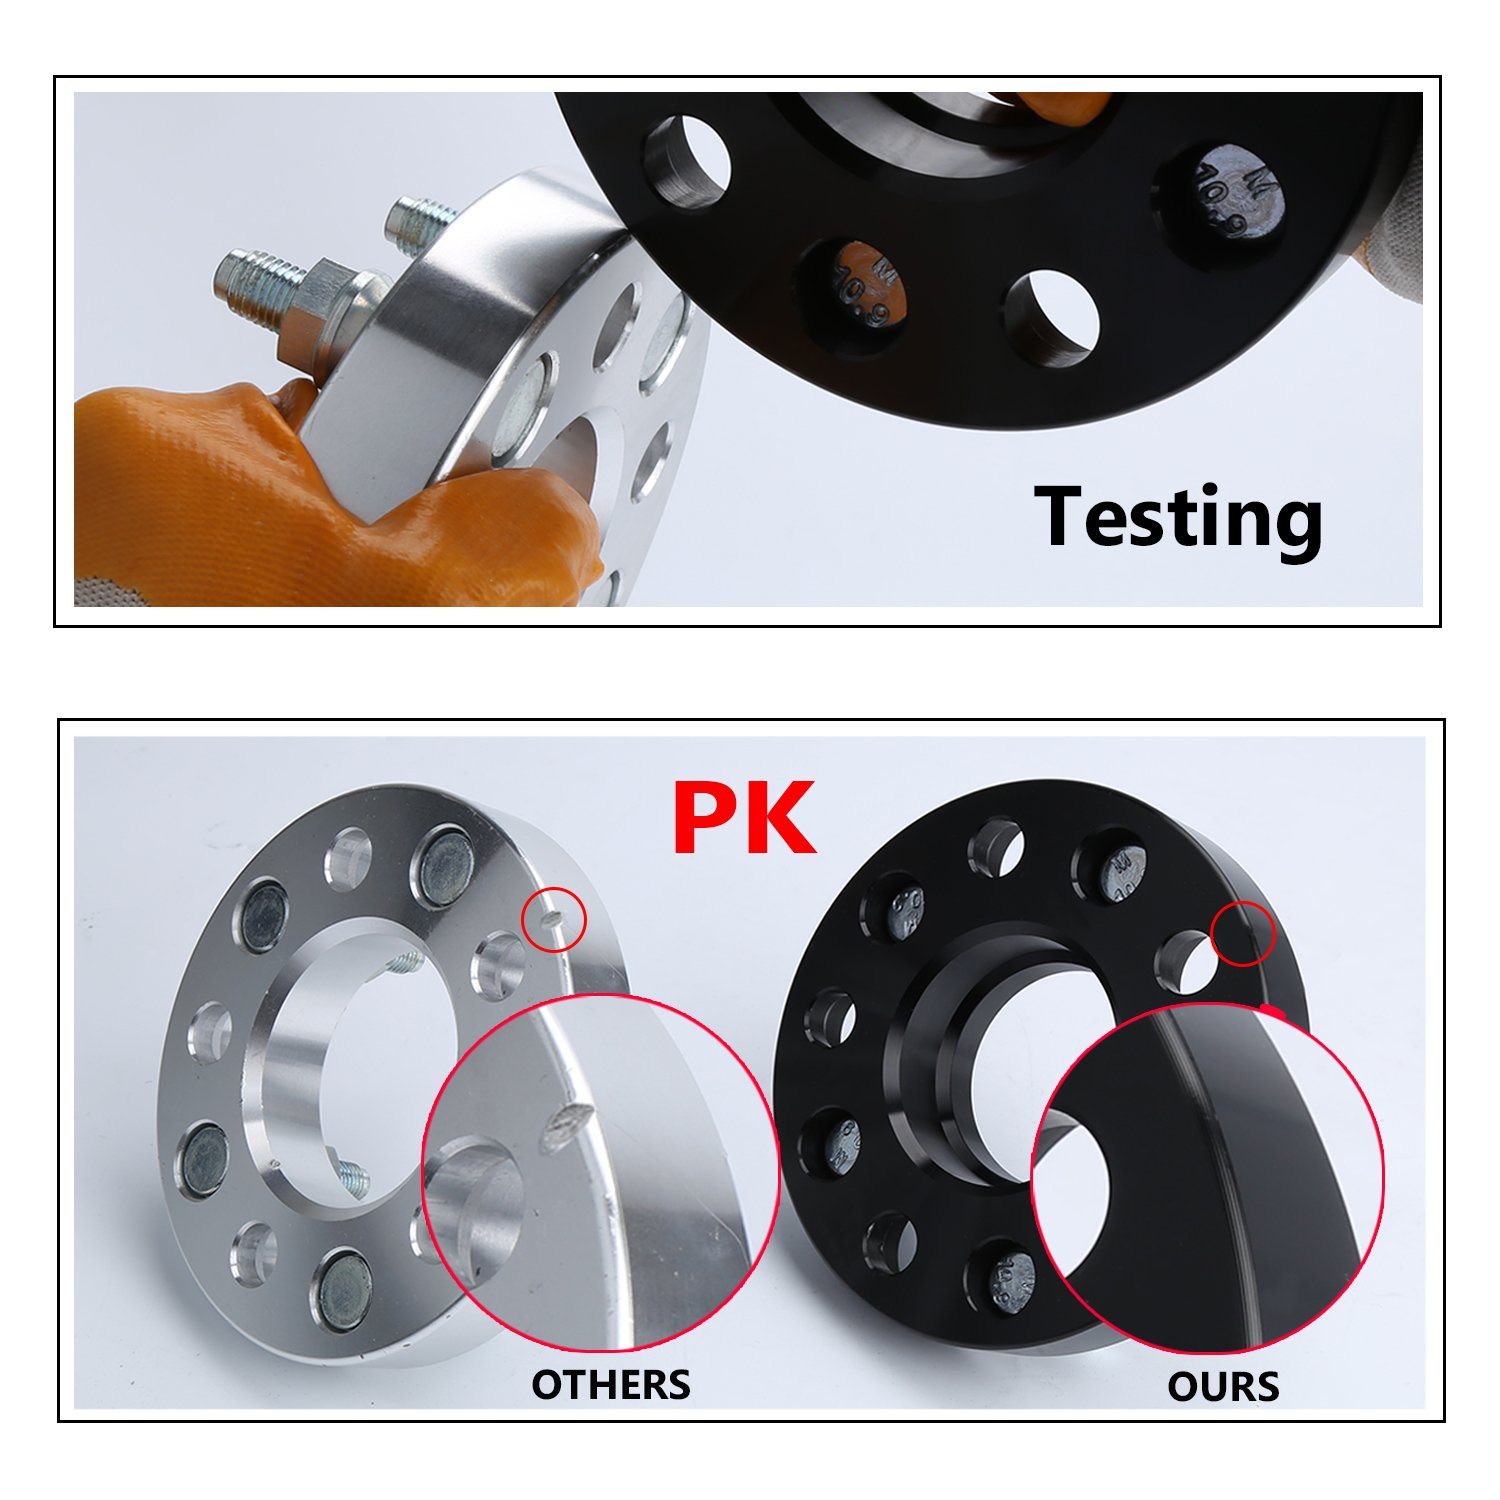 Wheel Spacers Jeep Kia Mazda,KSP 5X4.5 to 5X4.5 Thread Pitch M12x1.5 Hub Bore 67.1mm Thickness 20mm Wheel Spacer Fusion Hyundai Genesis Compass Patriot,2 Years Warranty by KSP Performance (Image #5)